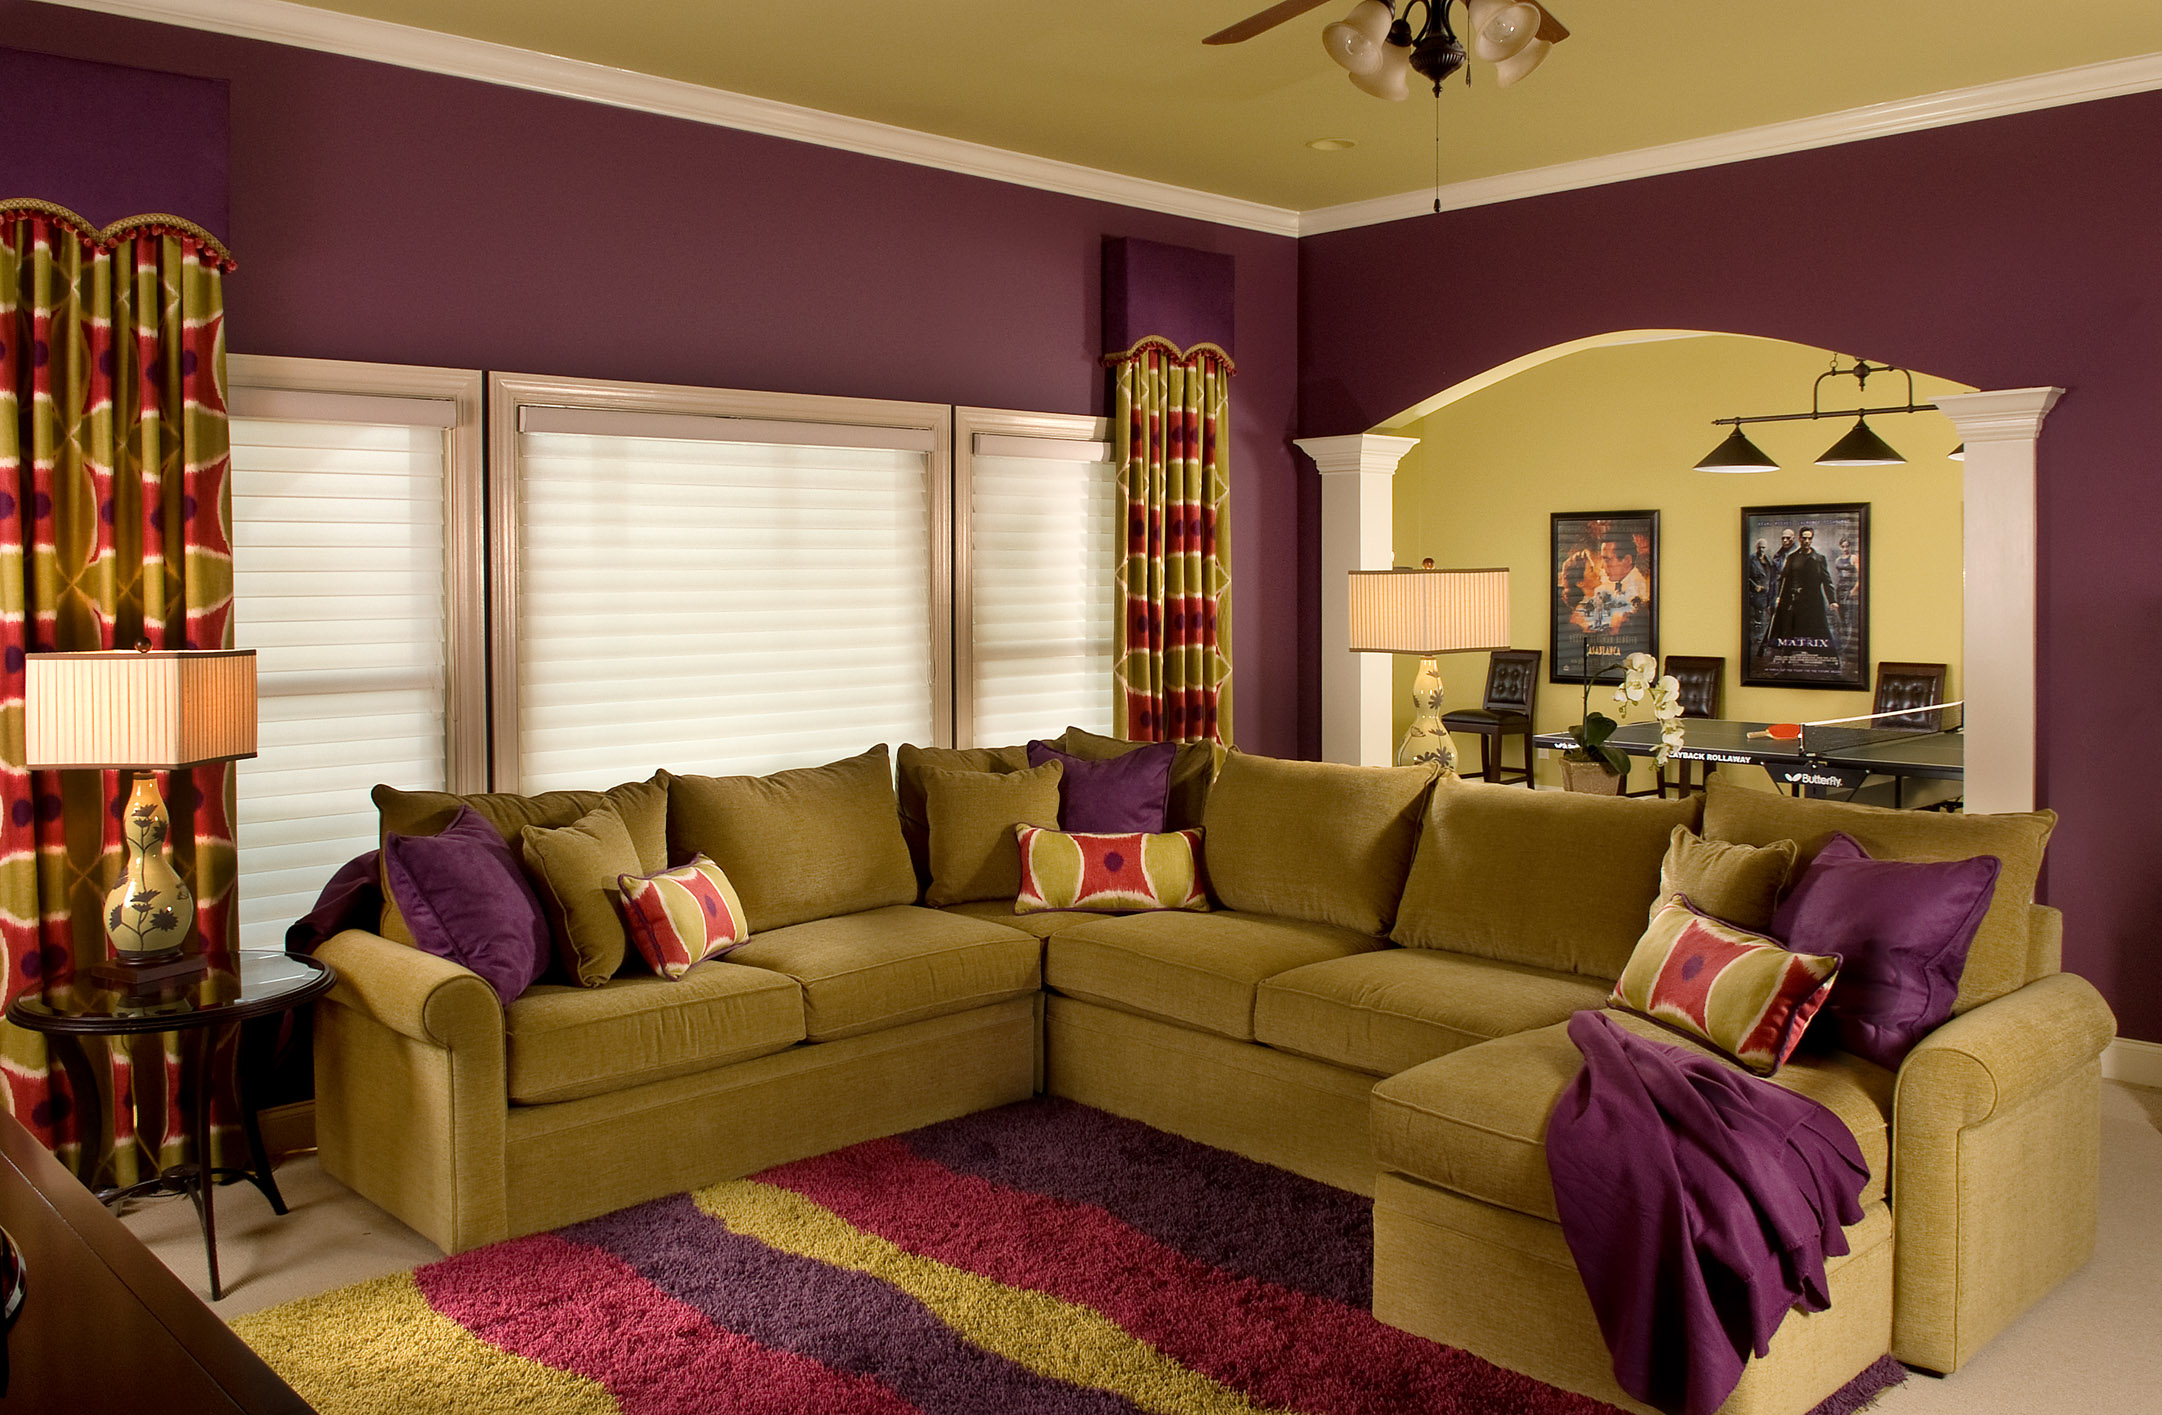 Great Living Room Paint Color Ideas with Purple 2162 x 1415 · 645 kB · jpeg